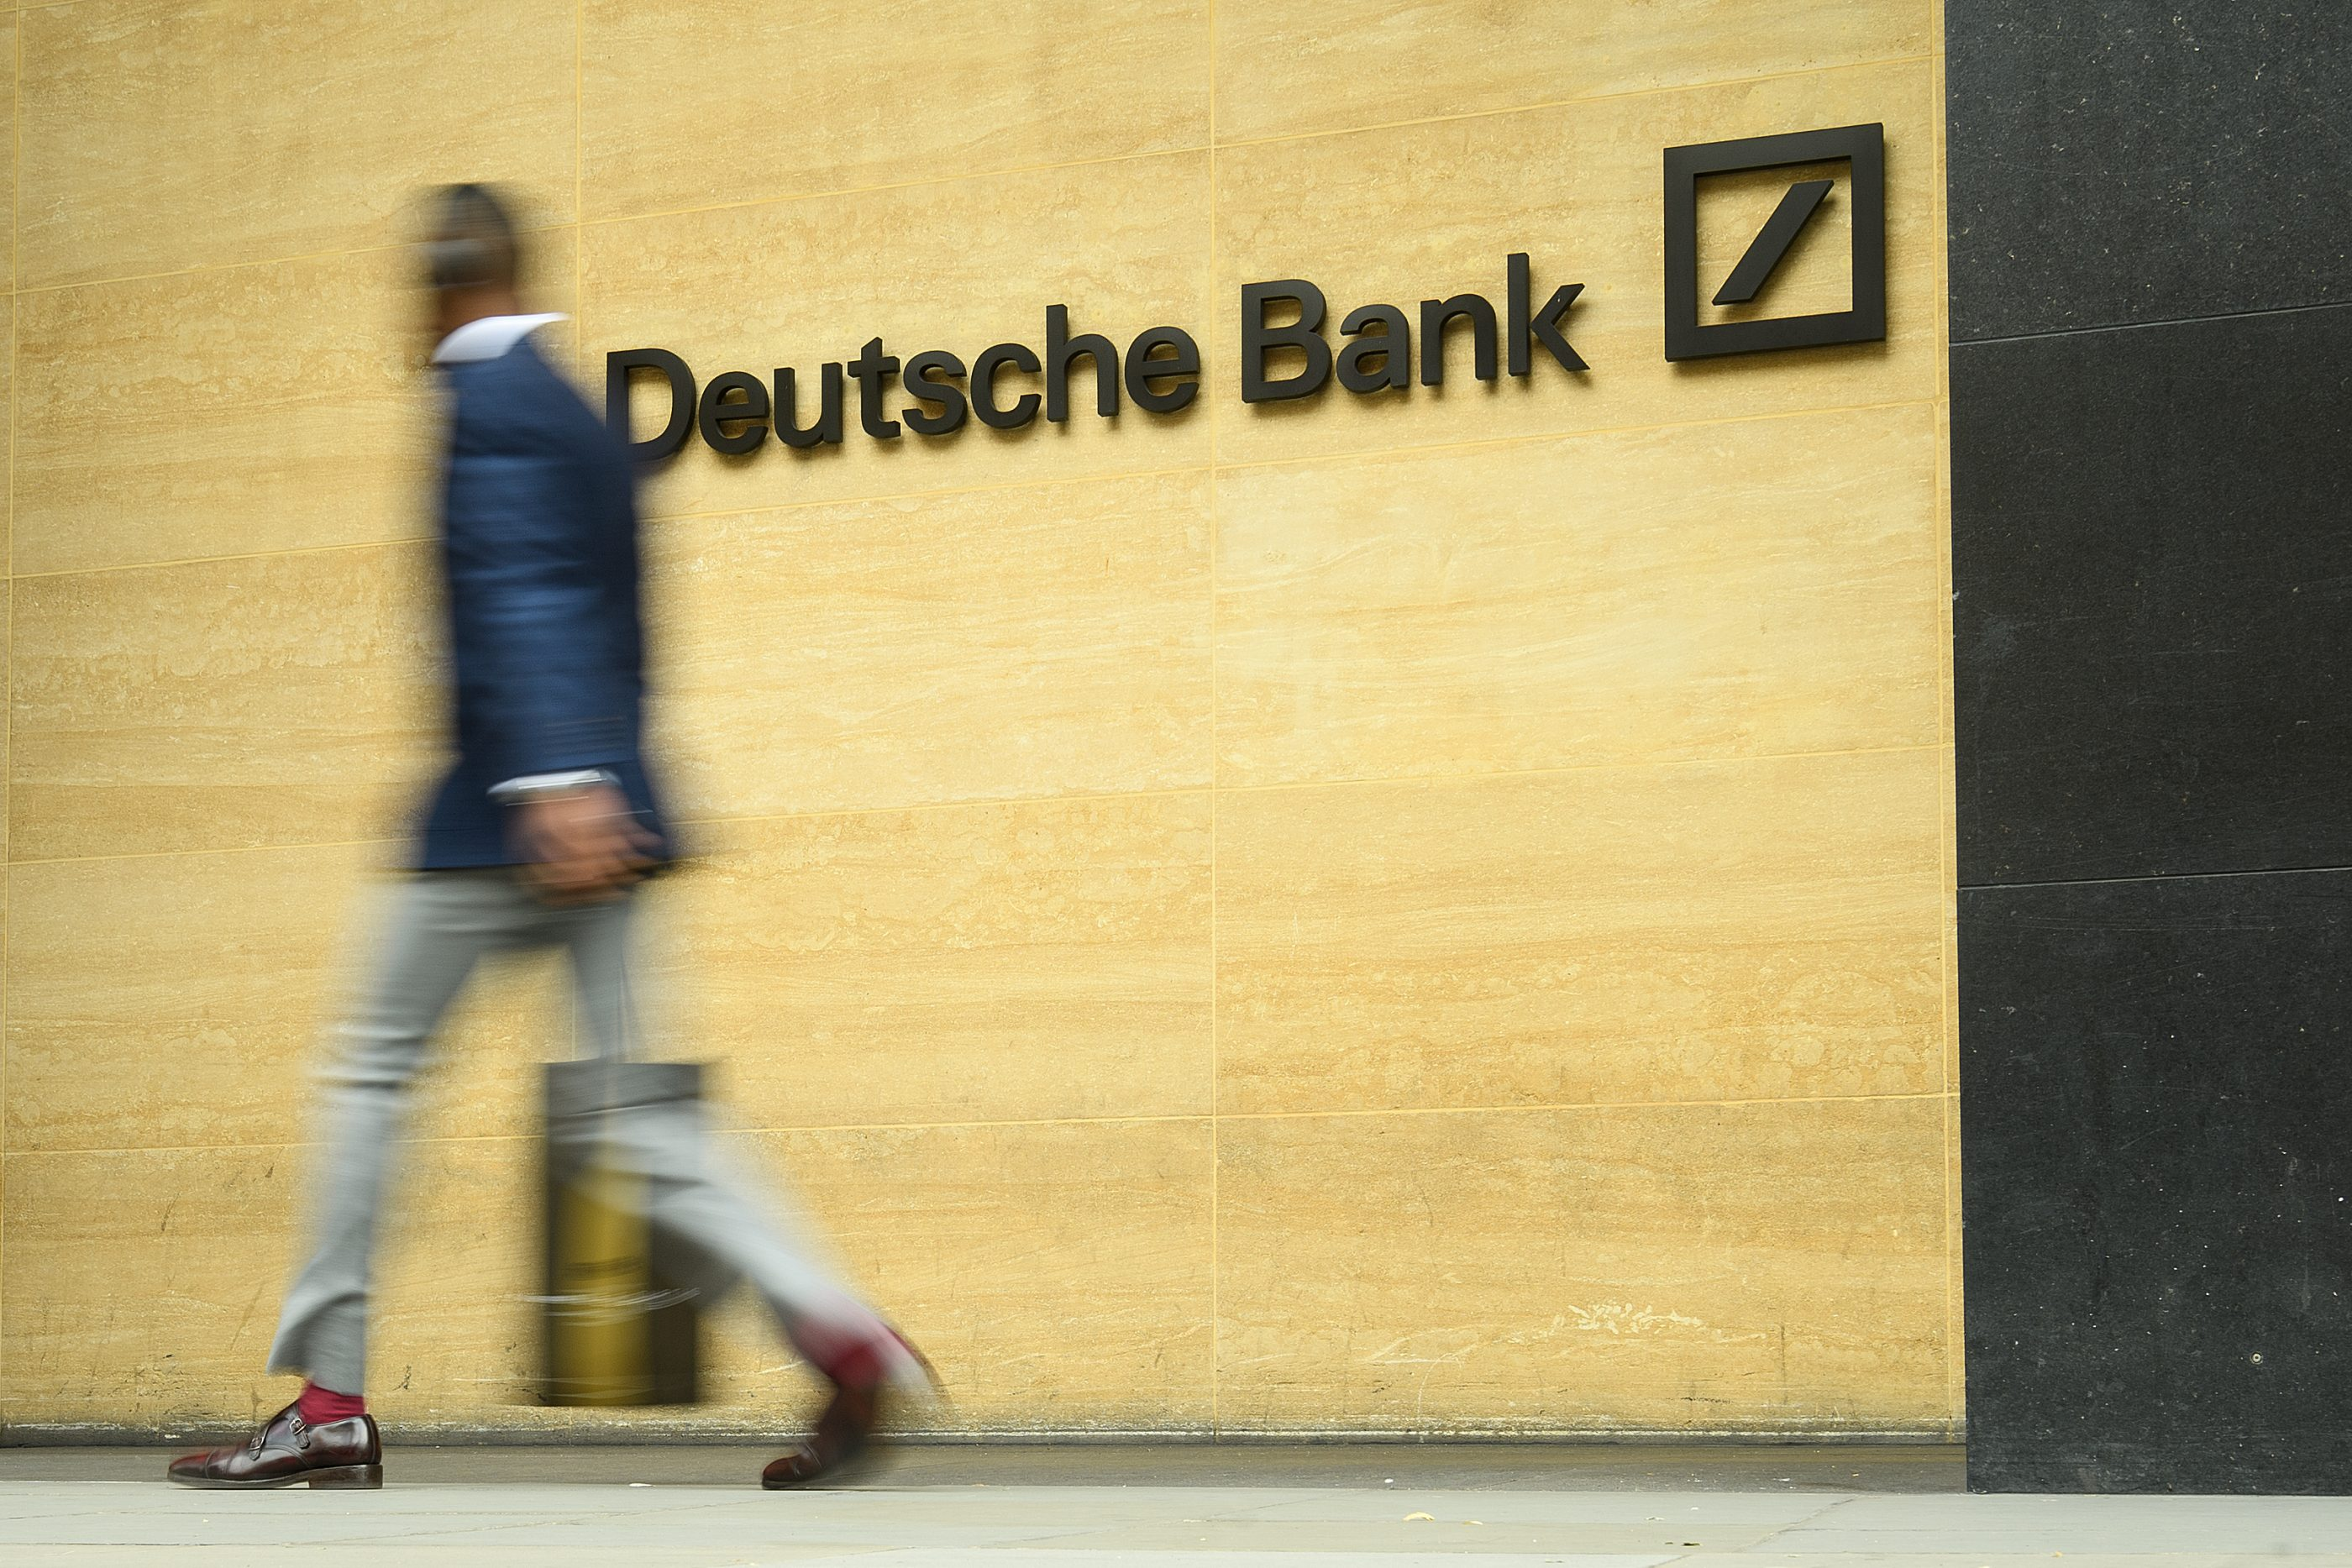 Deutsche Bank's London office on July 9, 2019.